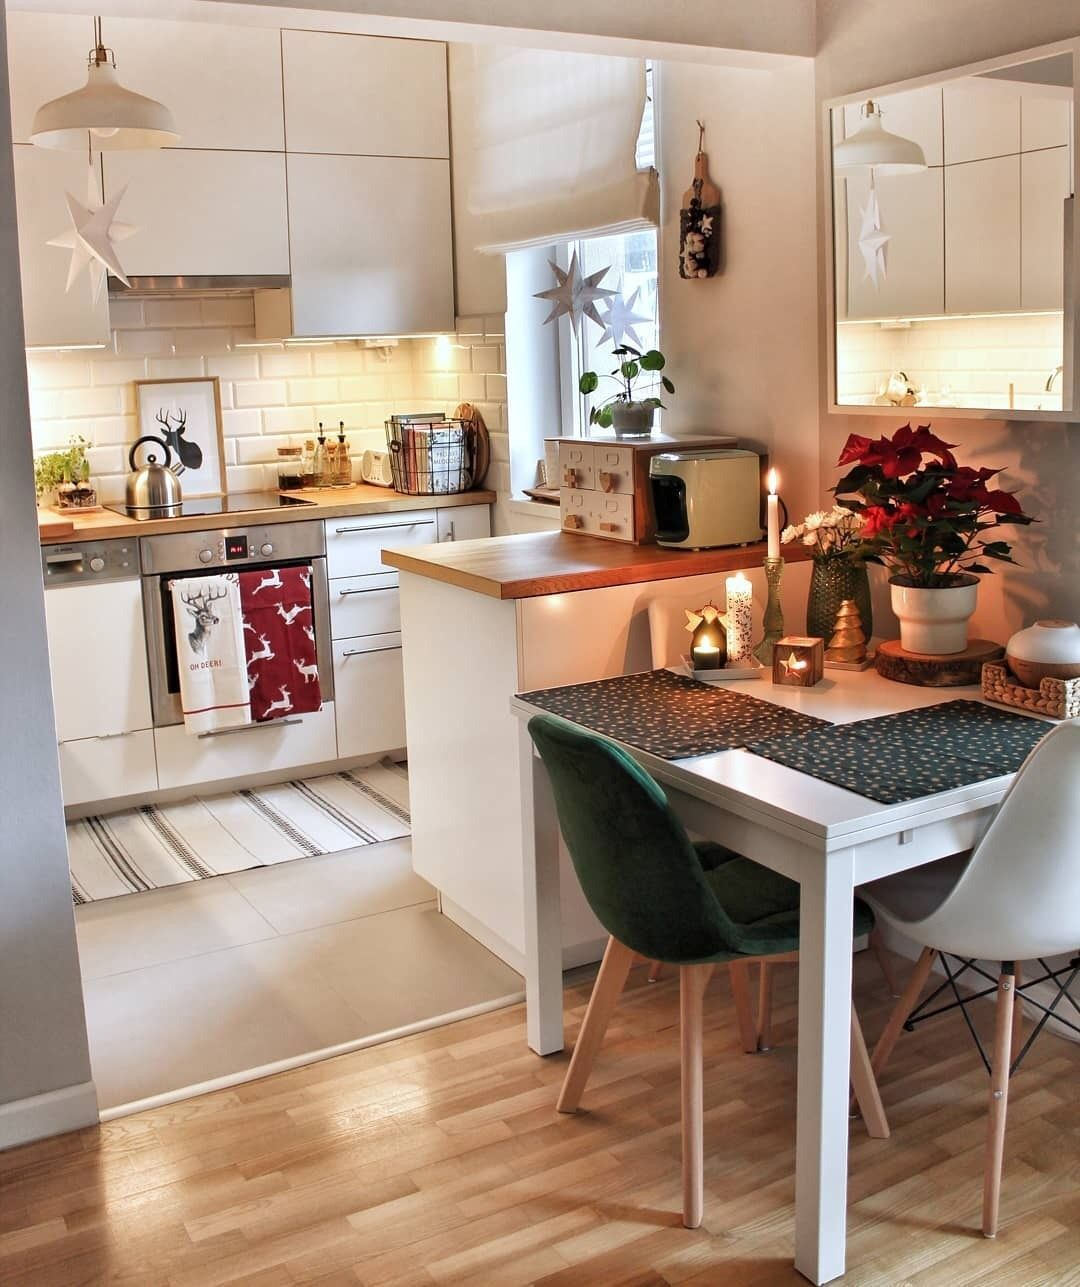 Pin By Stephanie Burke Landtroop On Home Design Small Apartment Kitchen Kitchen Design Small Home Decor Kitchen